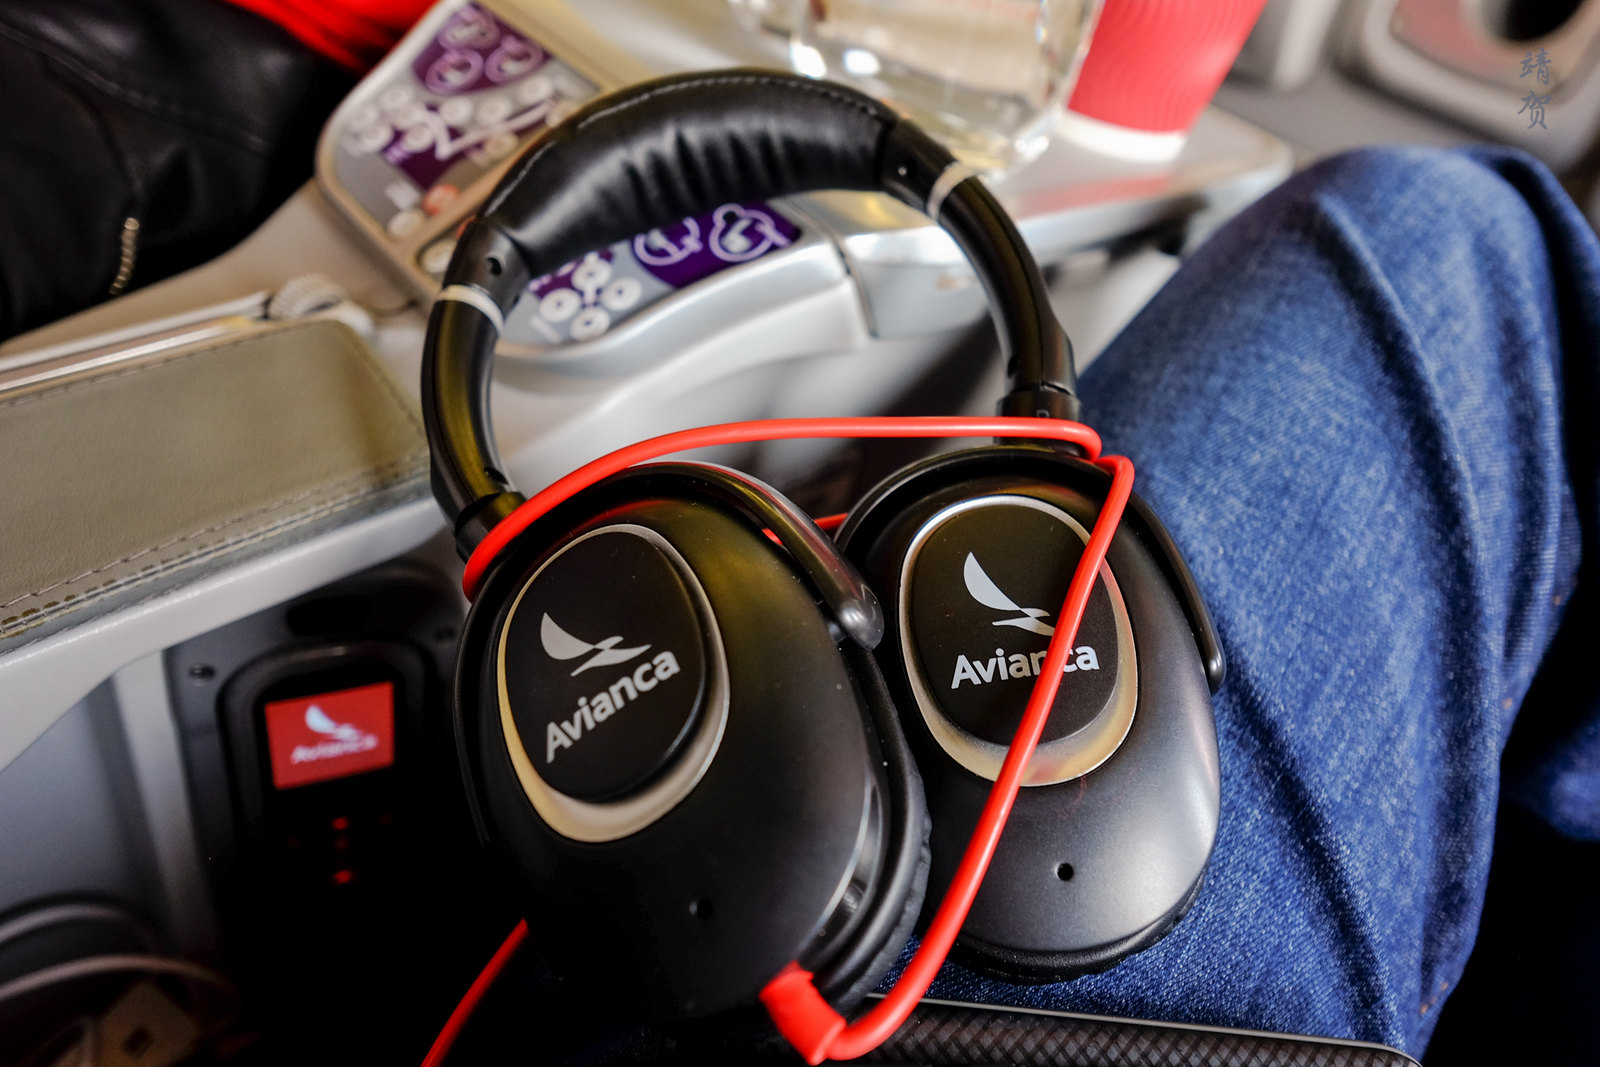 Headphones on Avianca